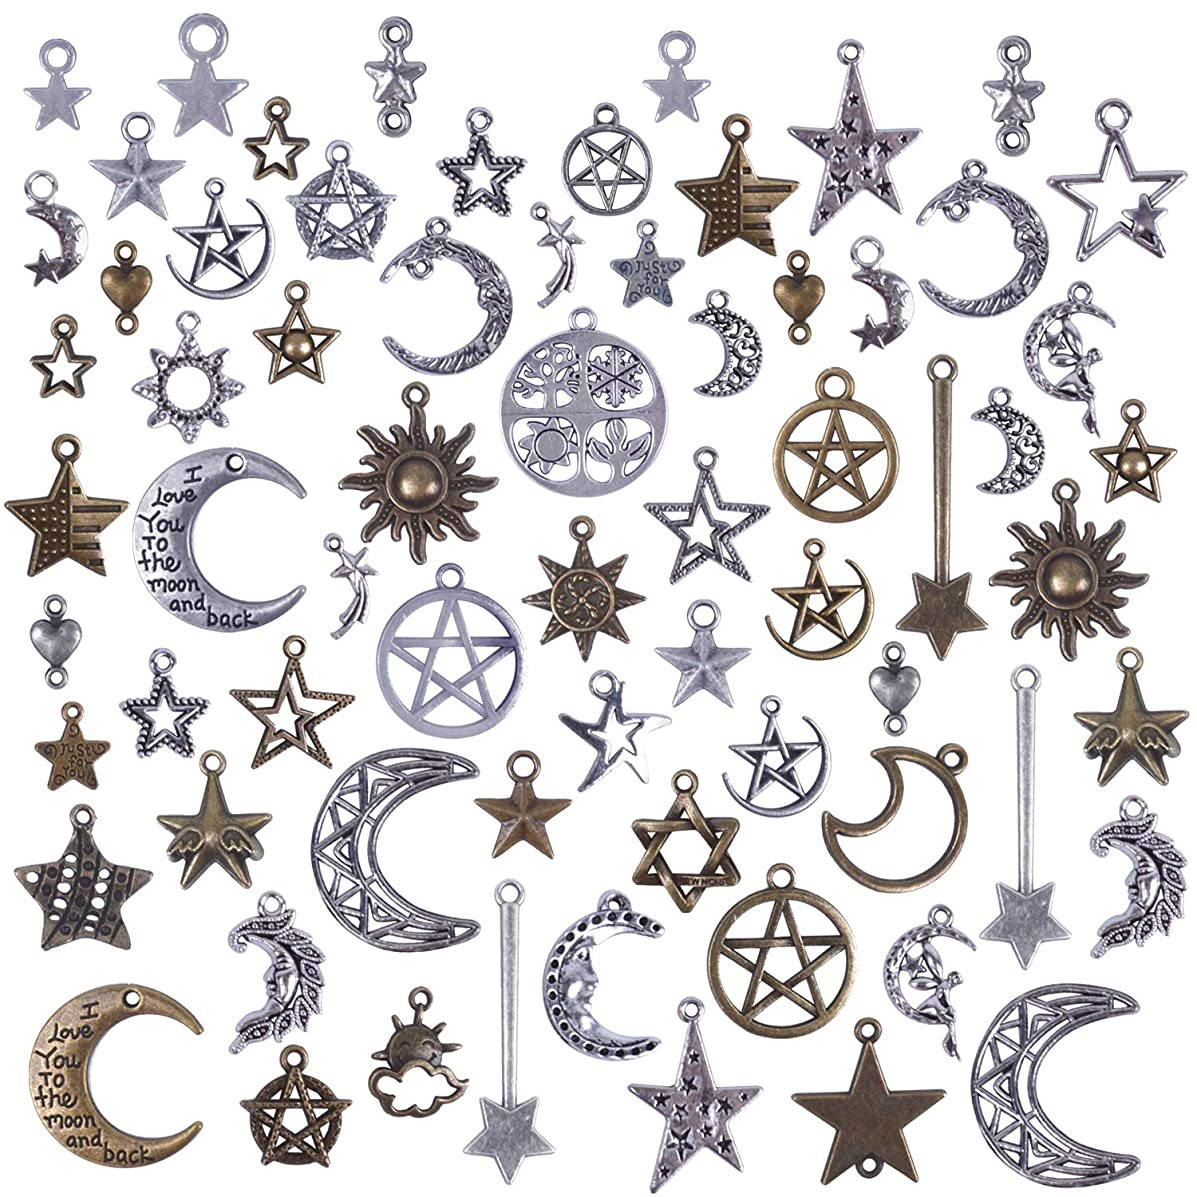 BronaGrand 100 Gram(Approx 73 Pieces) Mixed Sun Moon Star Charms Antique Celestial Charms Pendants for Bracelets, Necklaces, Crafts and Jewelry Making, Assorted Colors